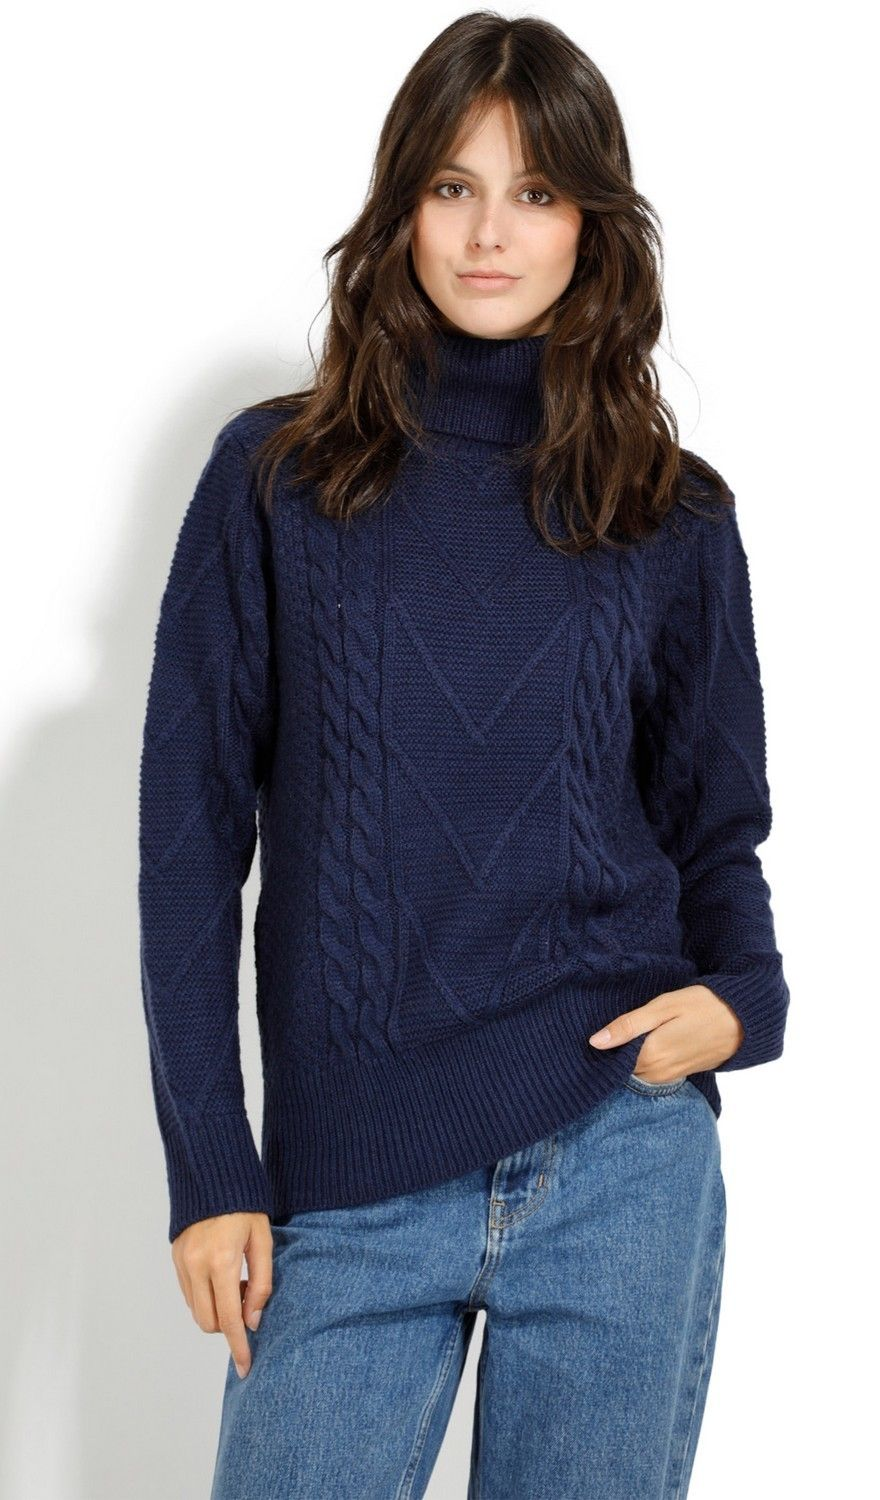 Assuili Roll Neck Twisted Yarn Sweater in Navy